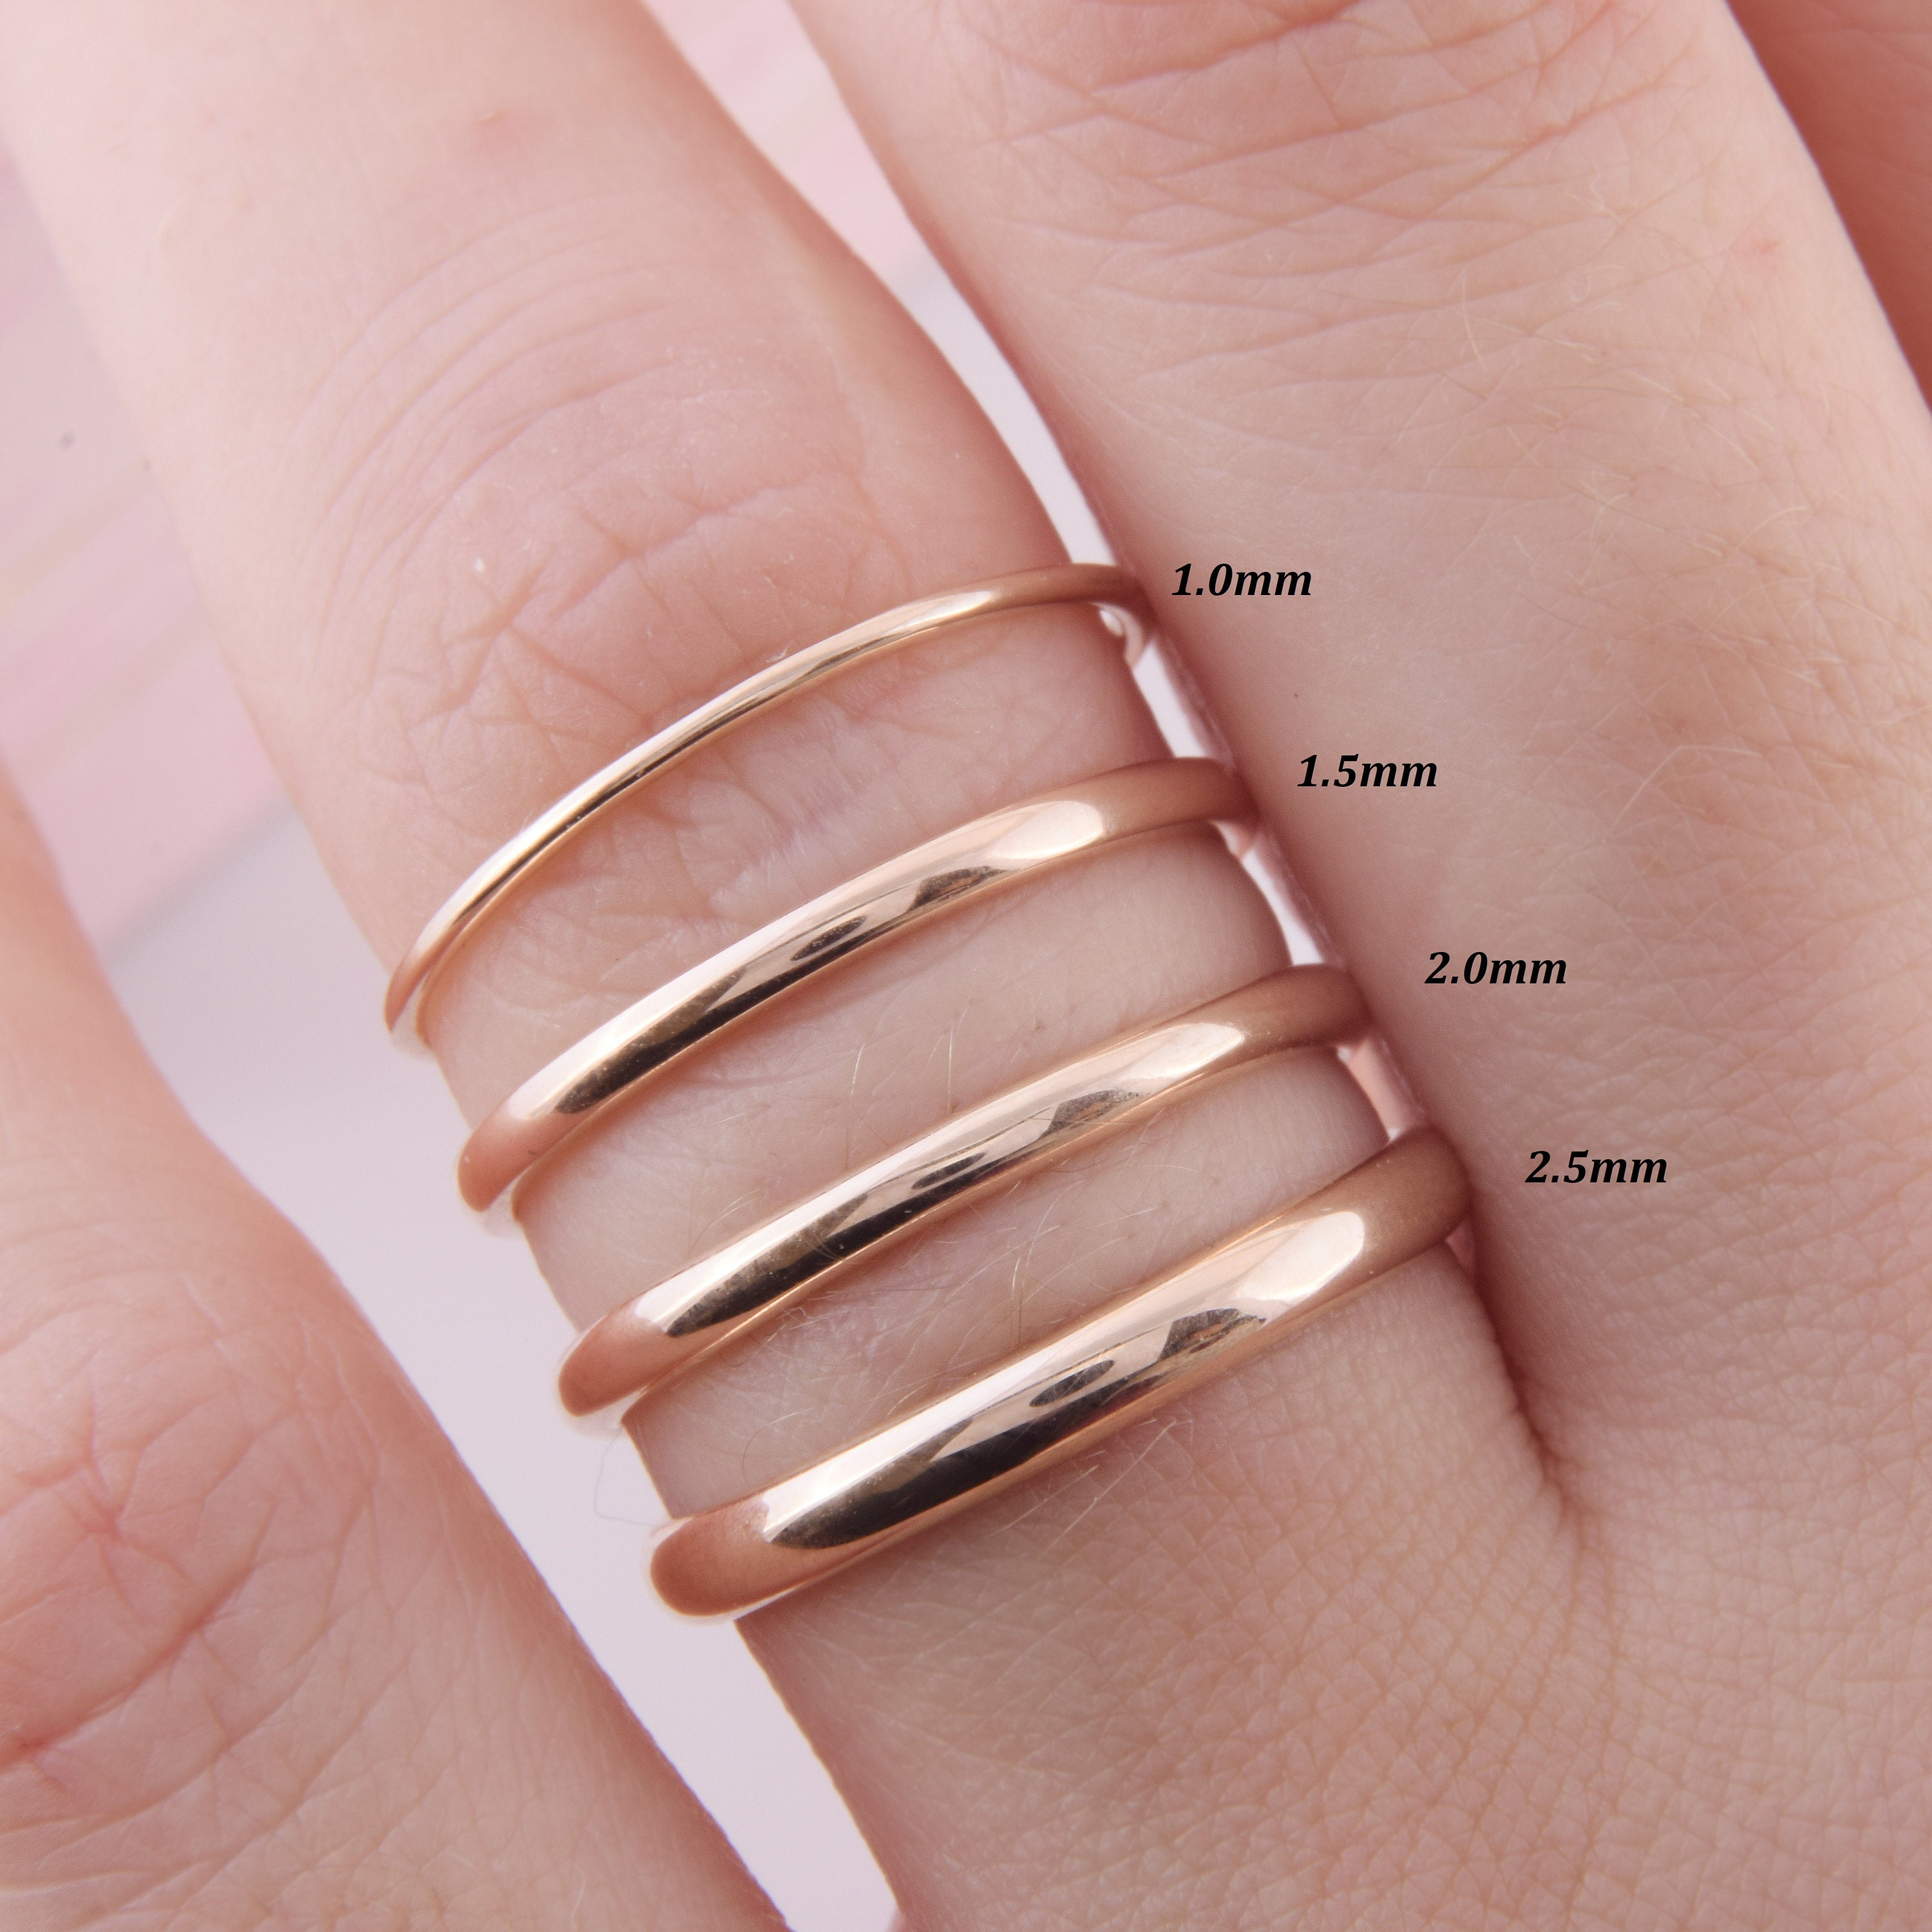 Details about  /Stackable 14K Gold Wedding Ring Simple Plain Band Womens Jewelry Gifts Size 5-10